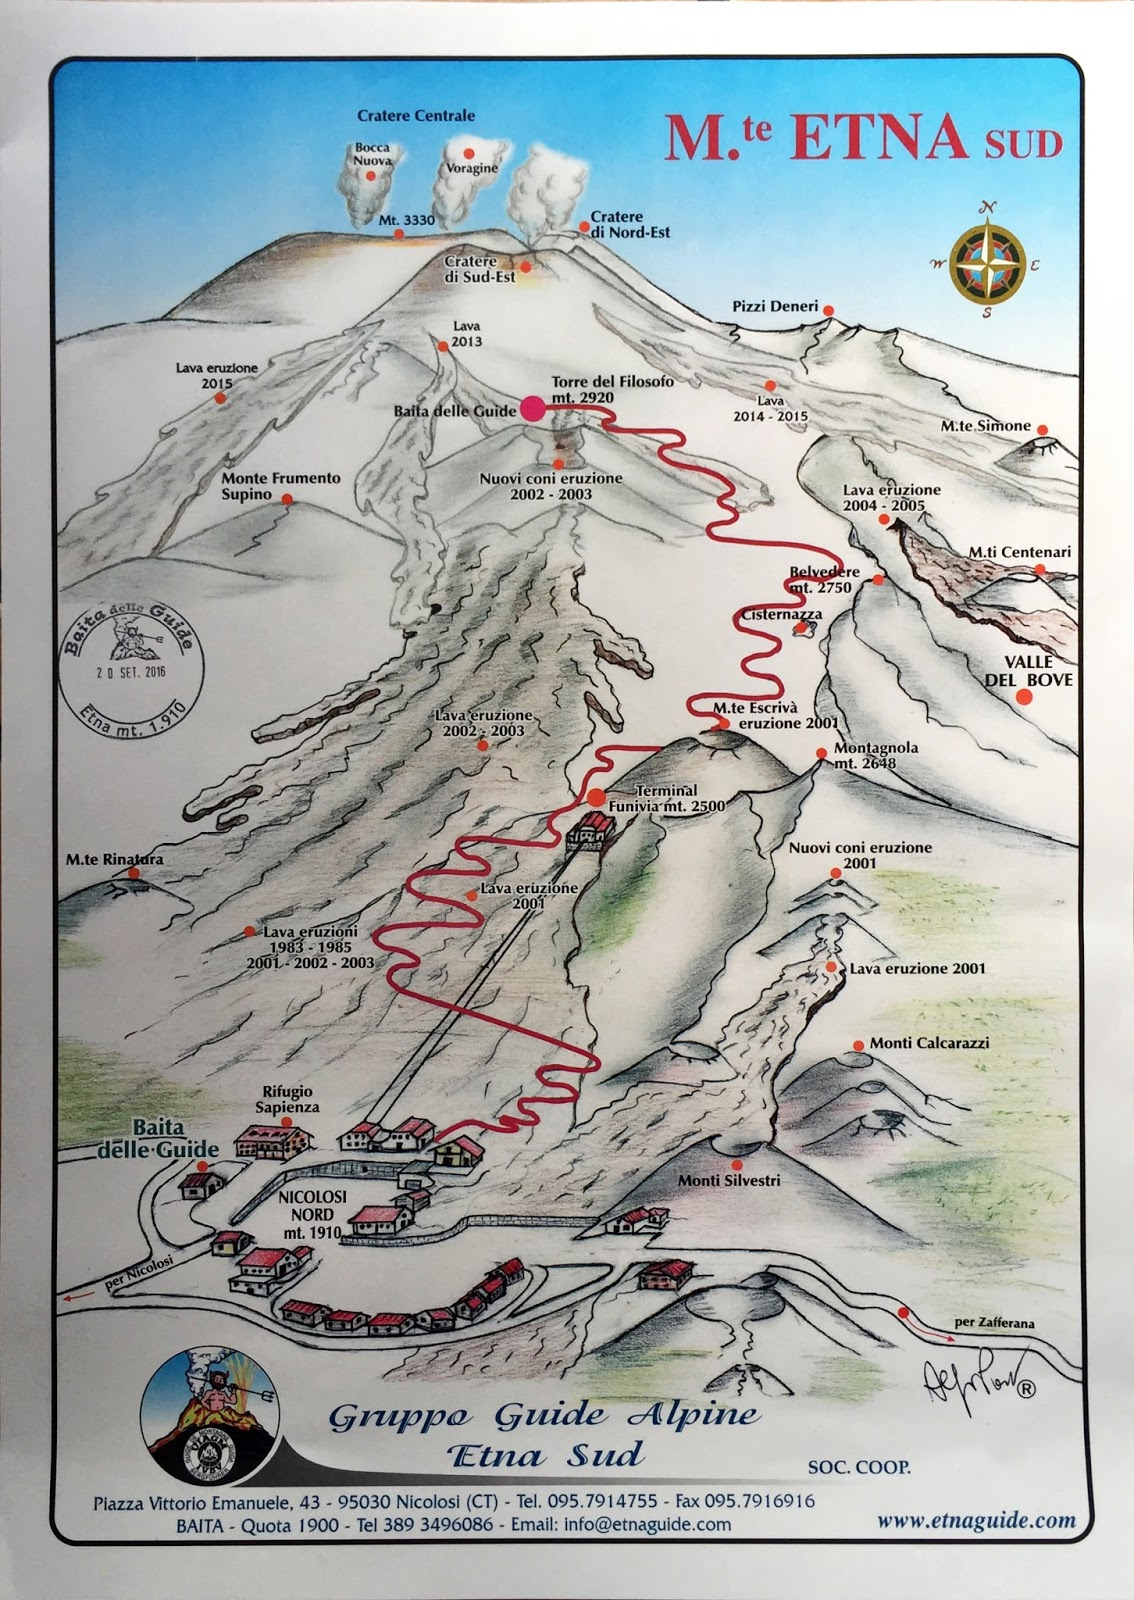 Gruppo Guide Etna Nord Sicily, TravelMarx: The Mount Etna Summit Hike from Rifugio Sapienza